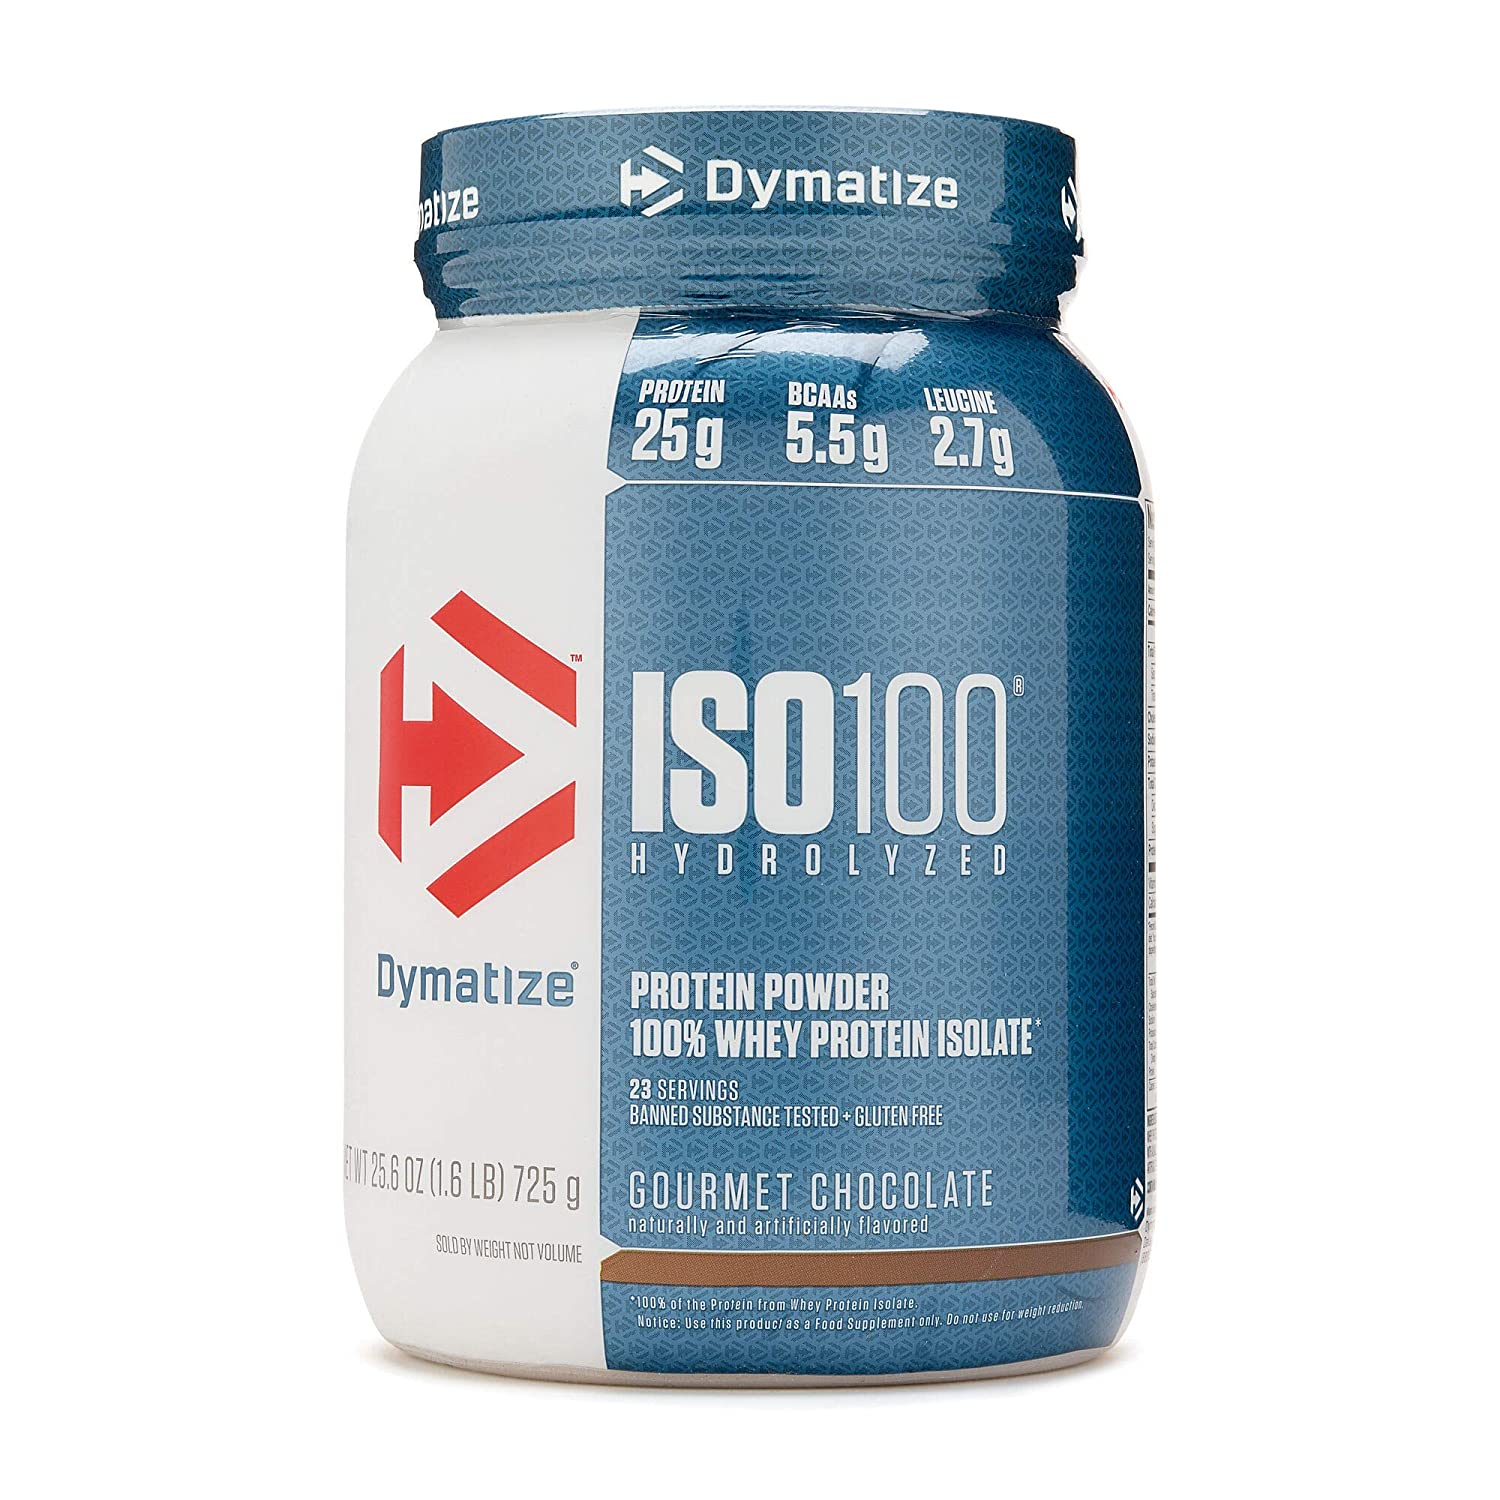 Dymatize ISO 100 Hydrolyzed Whey Protein Isolate – Gourmet Chocolate 1.6 lbs